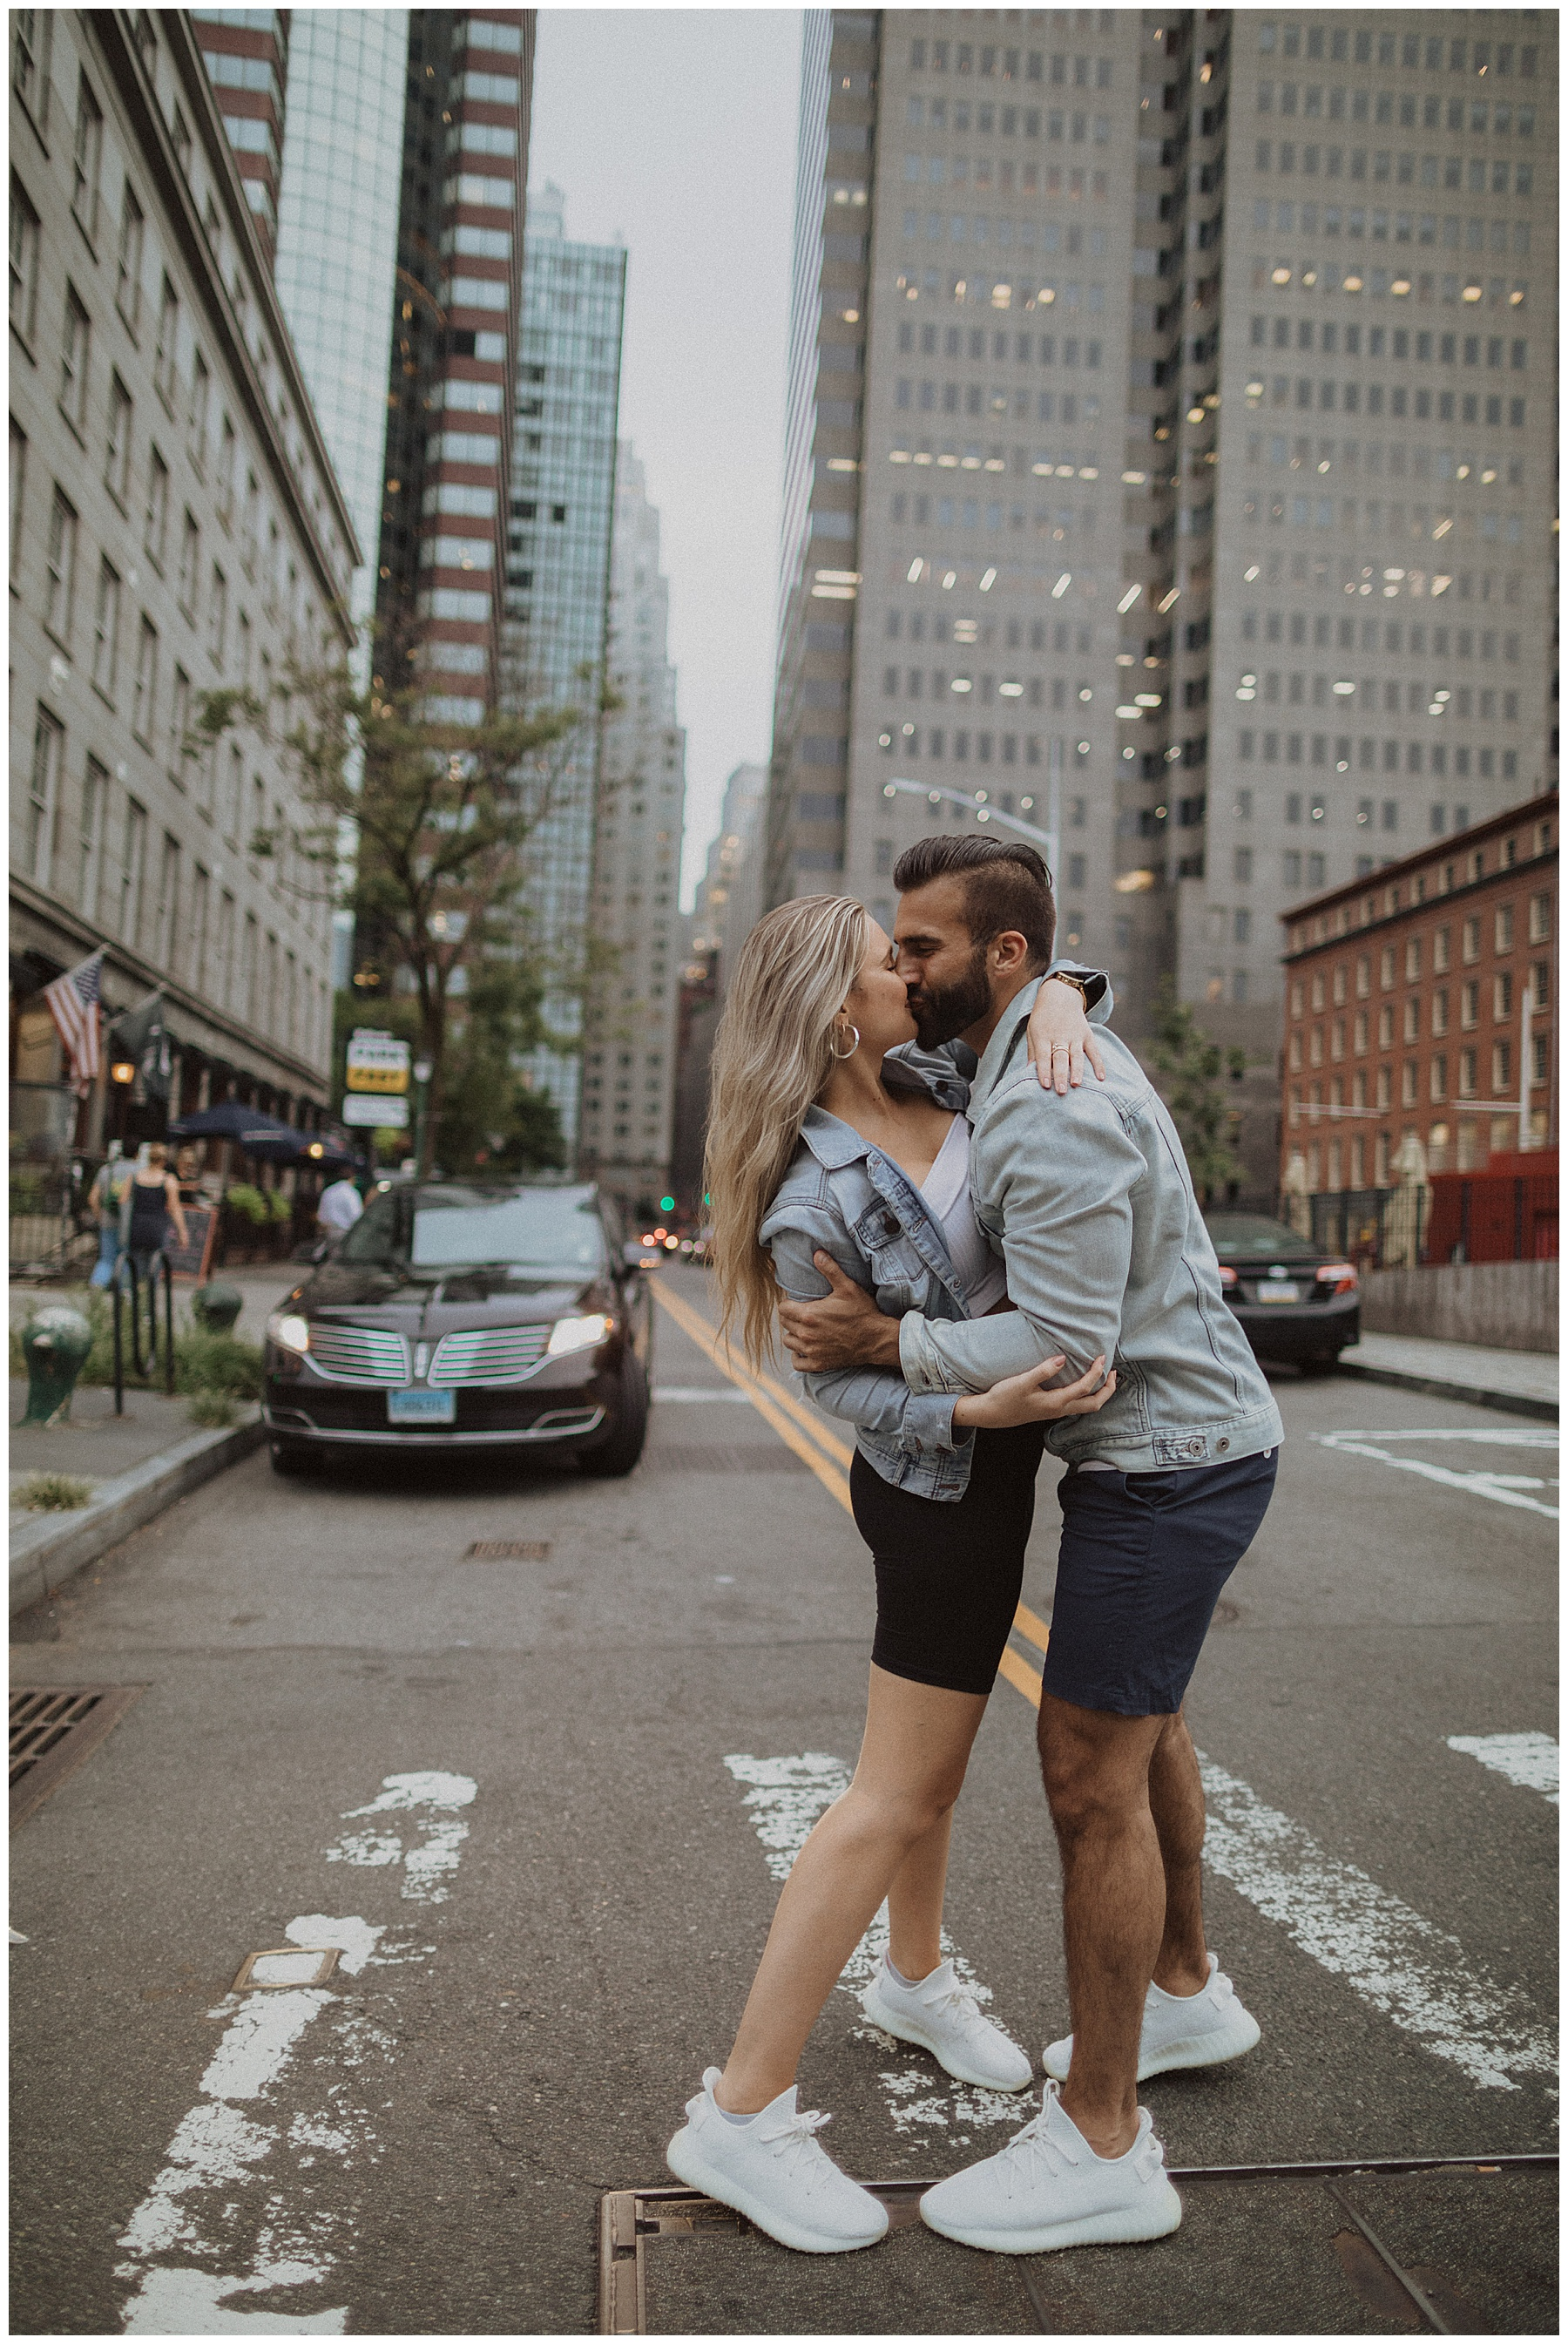 Couple making out at a crosswalk in New York City financial district